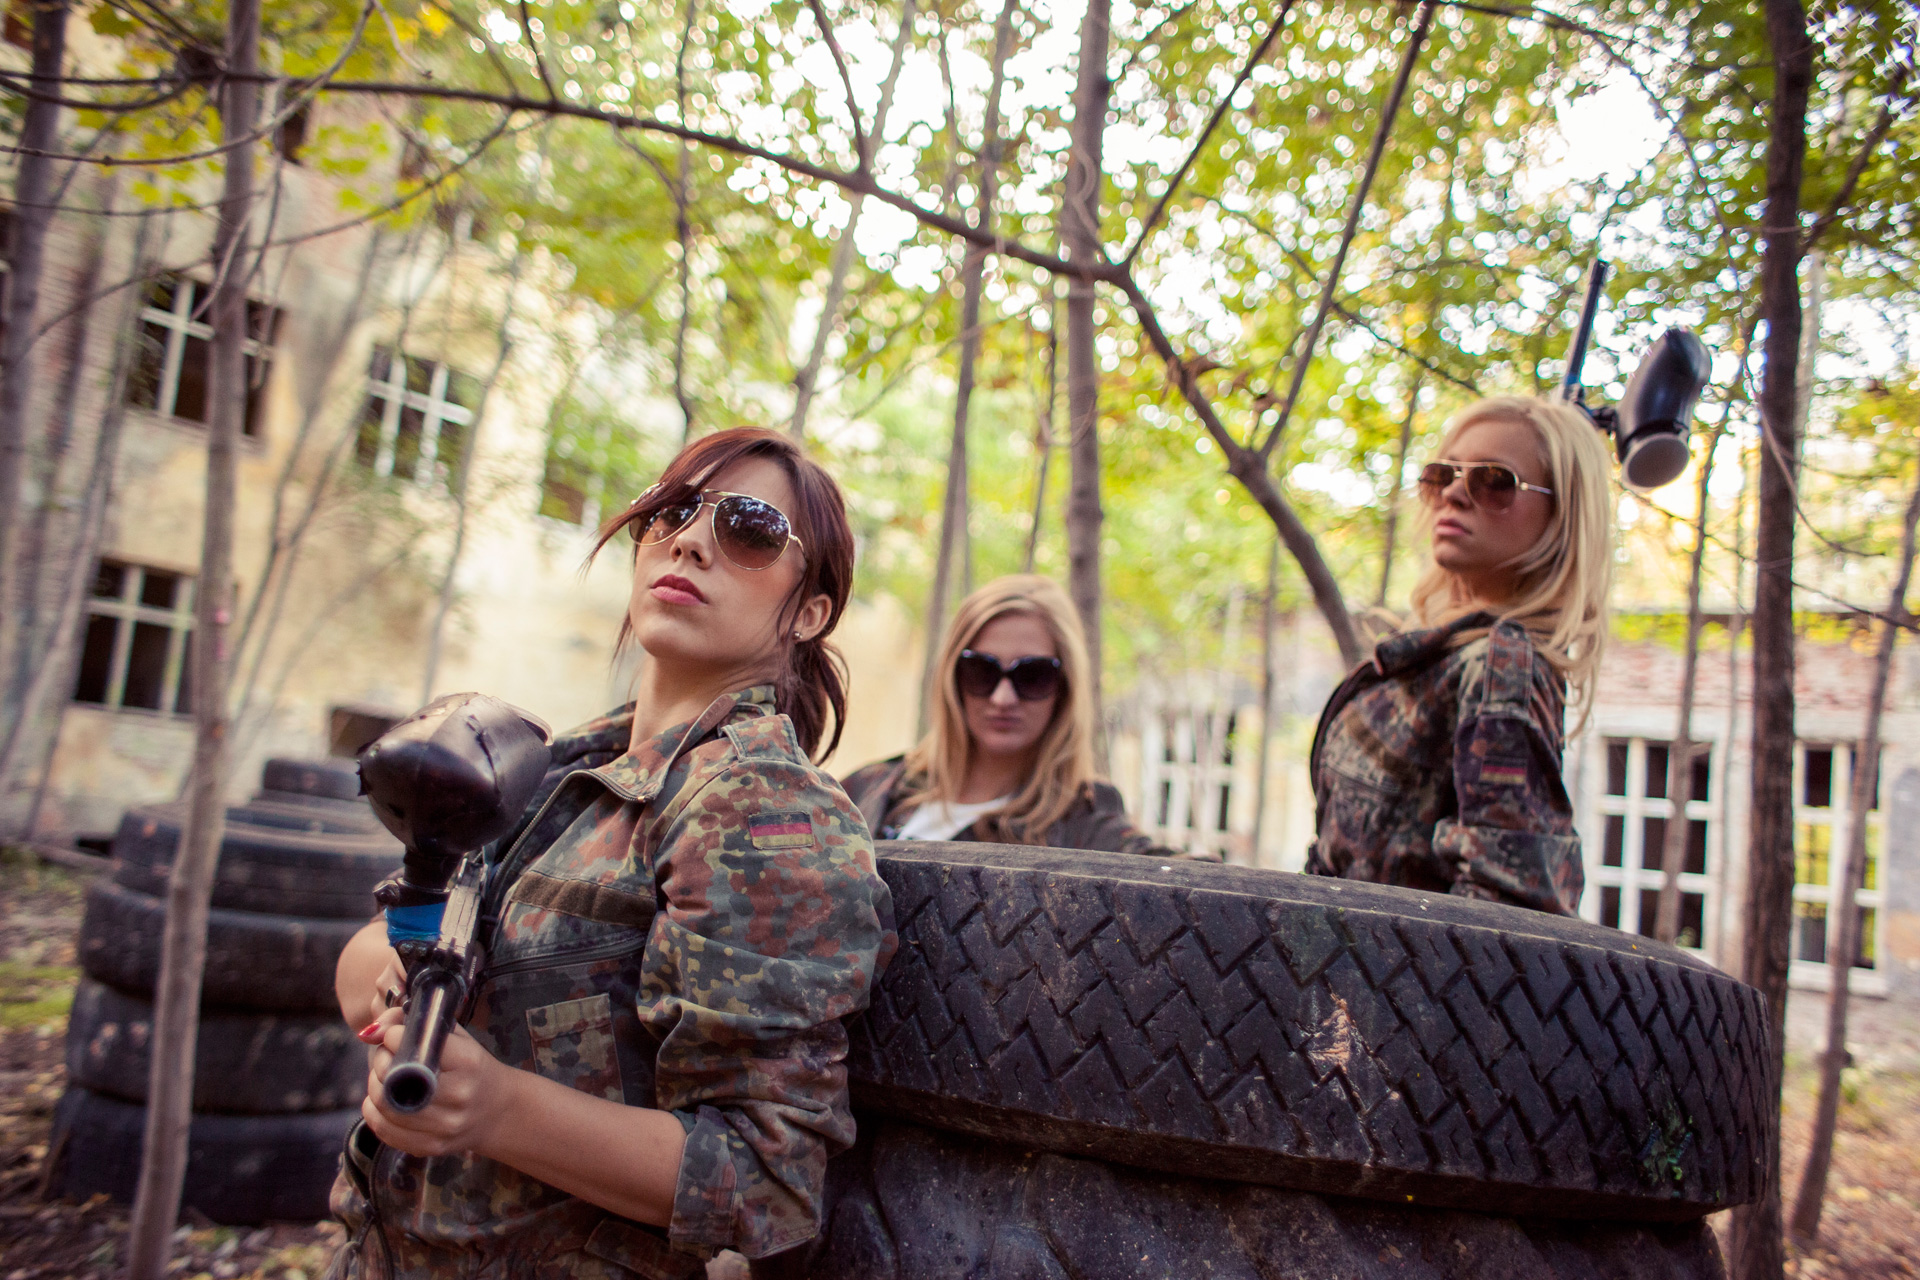 Athens activities | Paintball